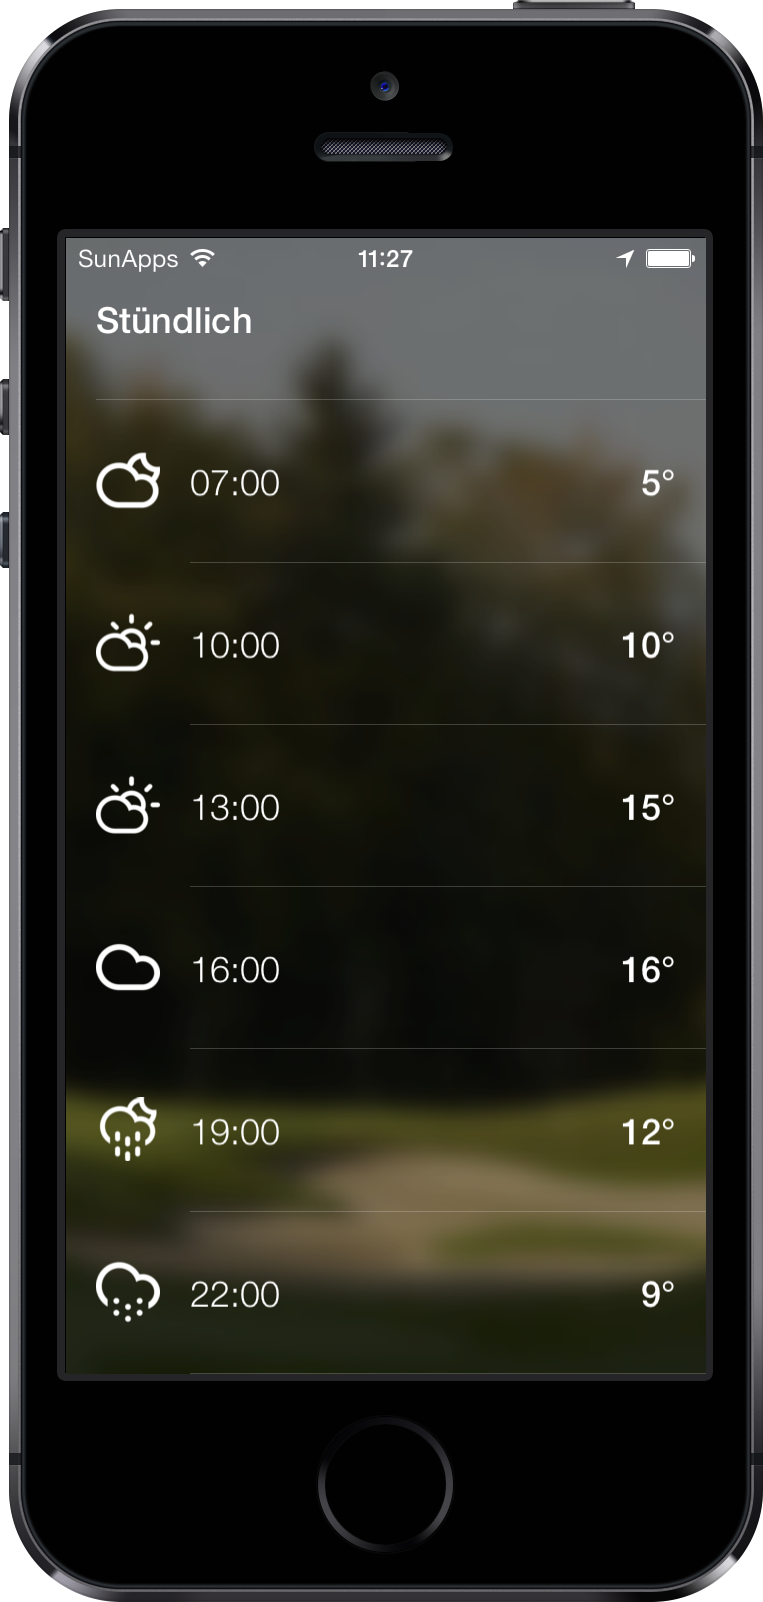 The weather screen